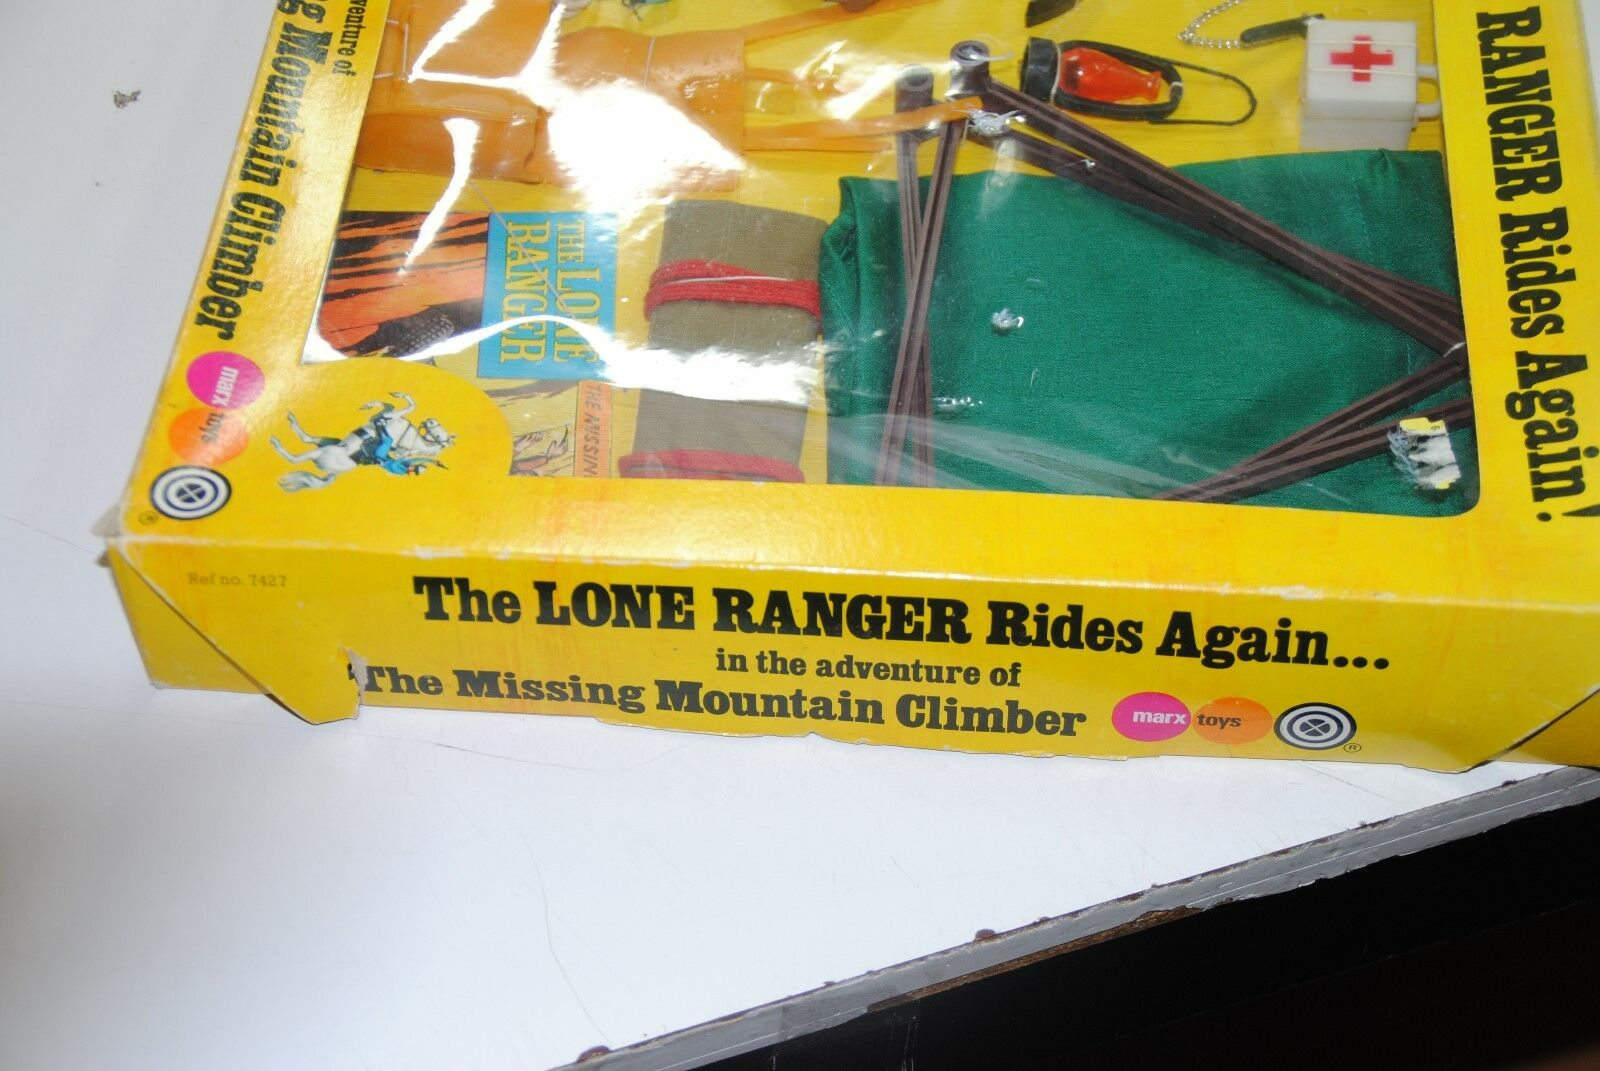 THE LONE RANGER RIDES AGAIN AGAIN AGAIN MARX GABRIEL   THE MISSING MOUNTAIN CLIMBER    mib 15f714